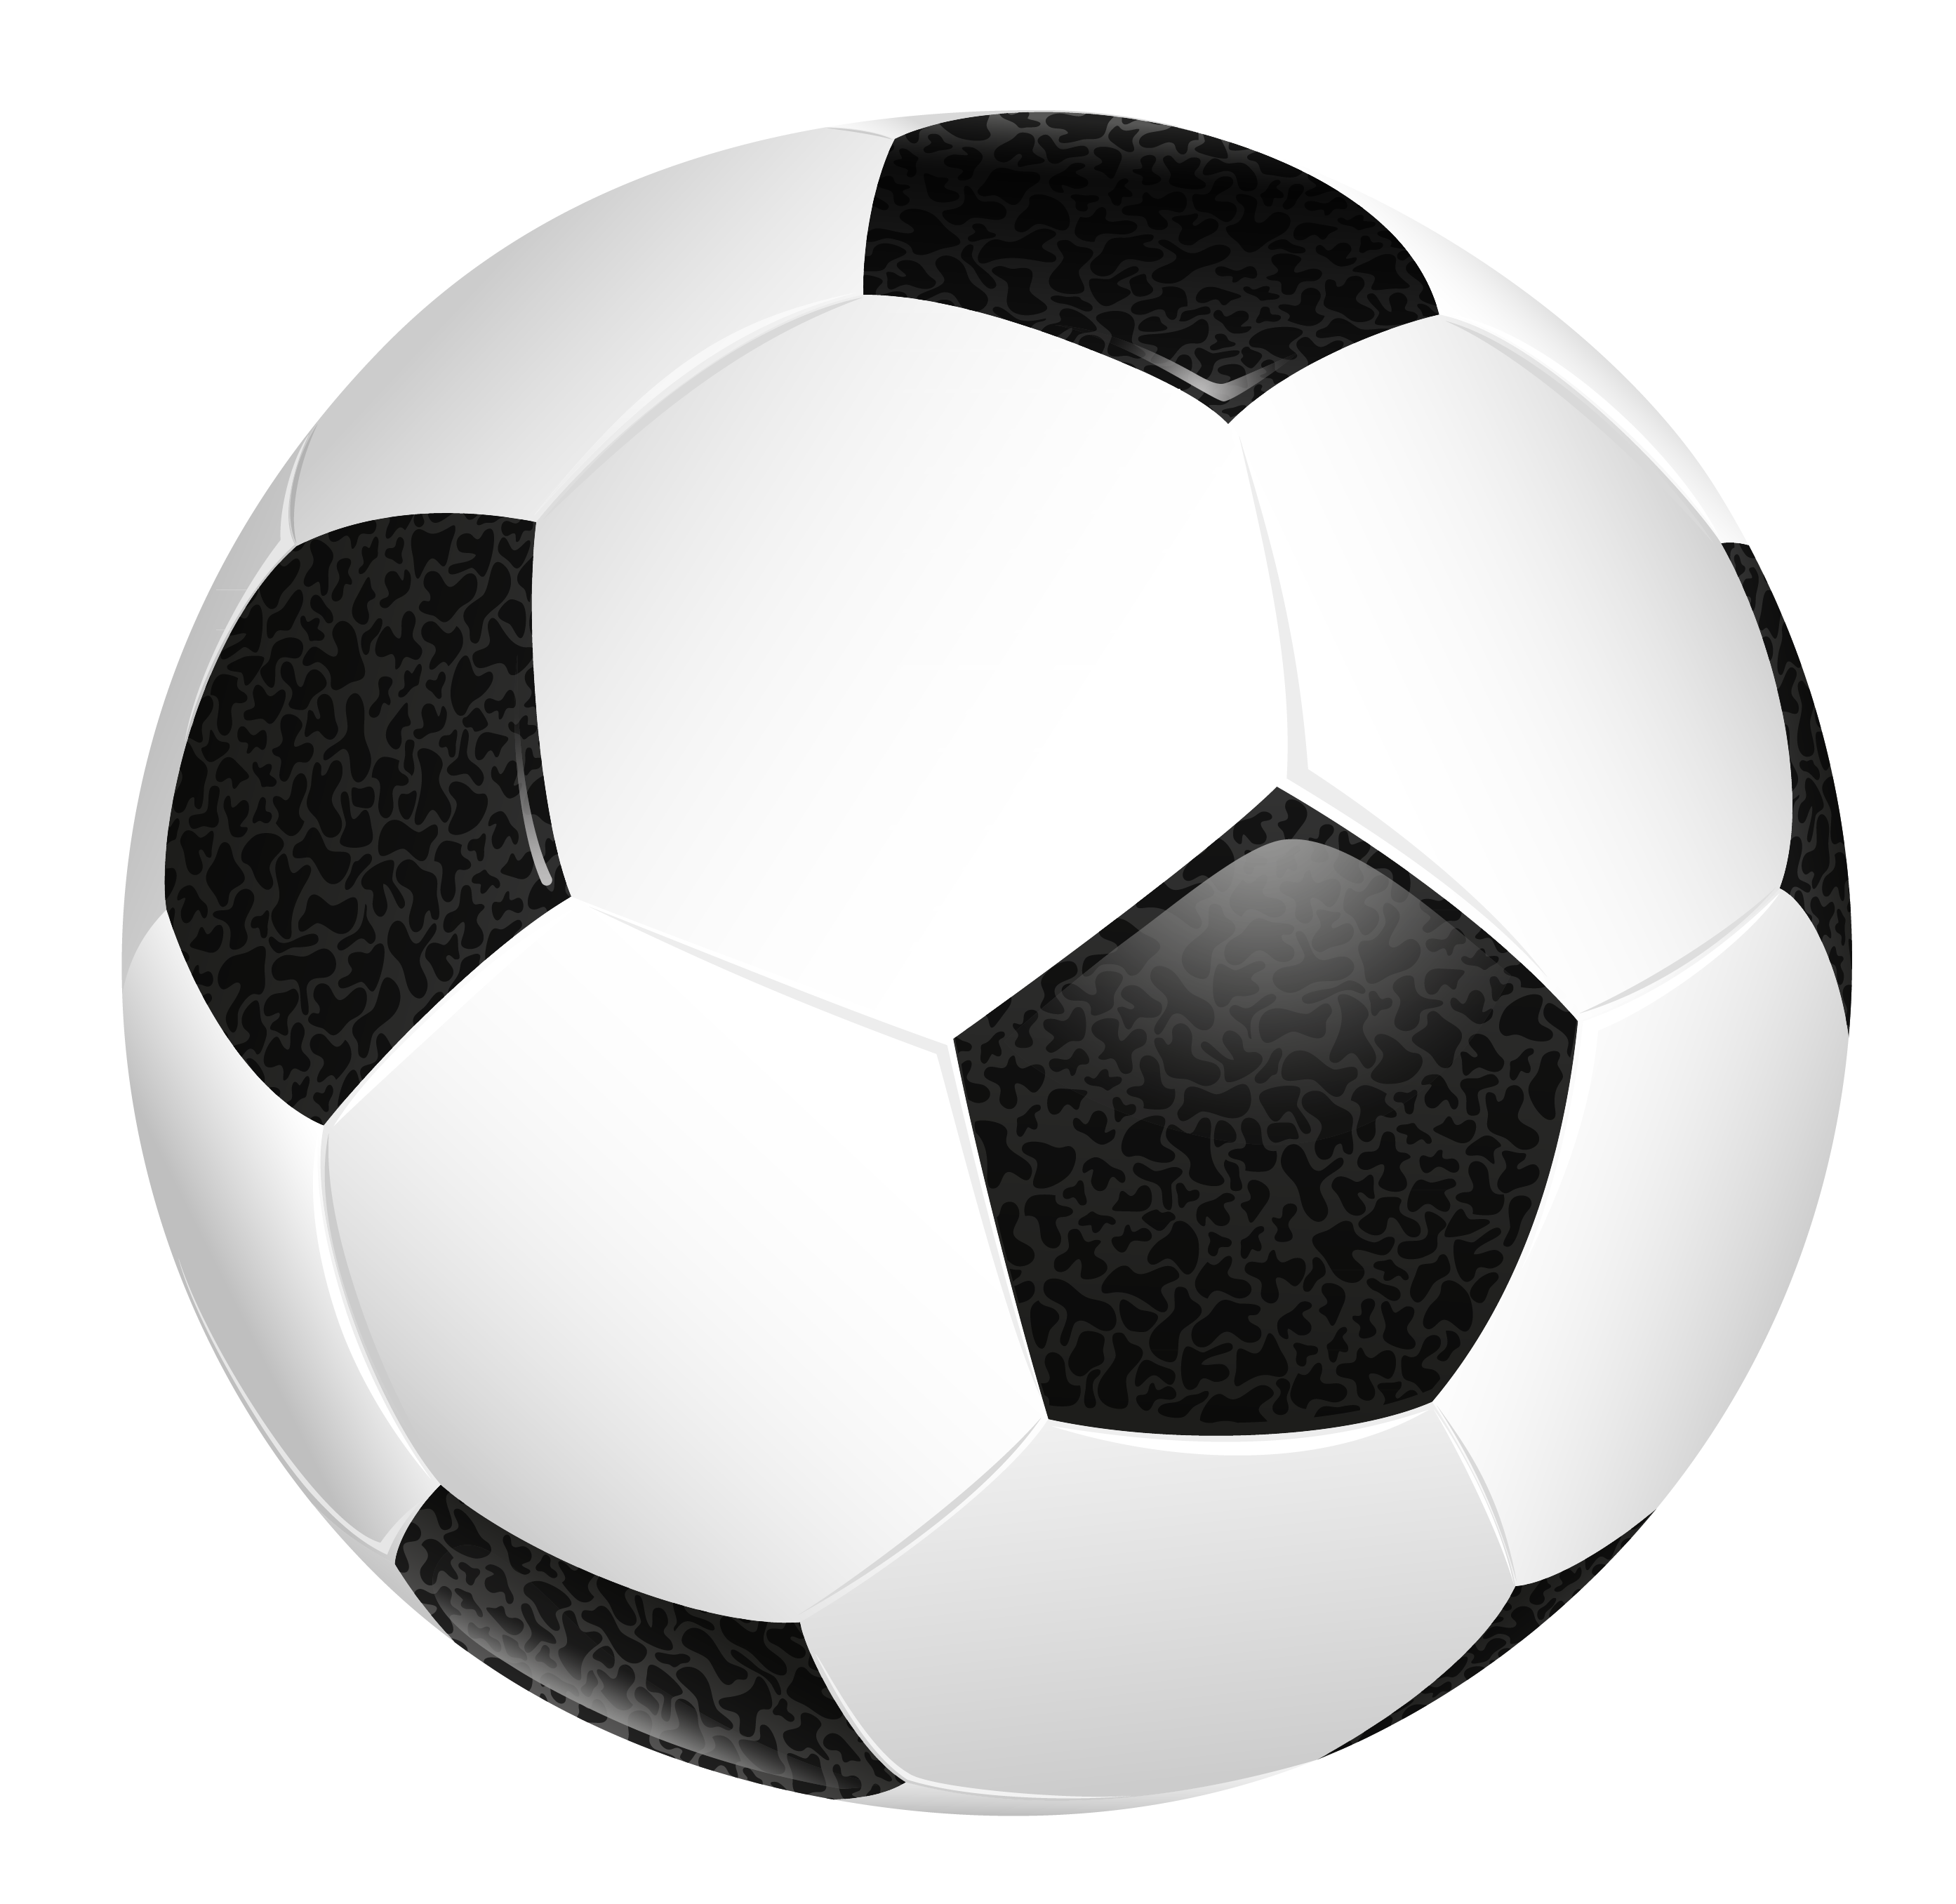 Soccer Ball Transparent Png Clipart Gallery Yopriceville High Quality Images And Transparent Png Free Clipart Soccer Ball Clip Art Soccer